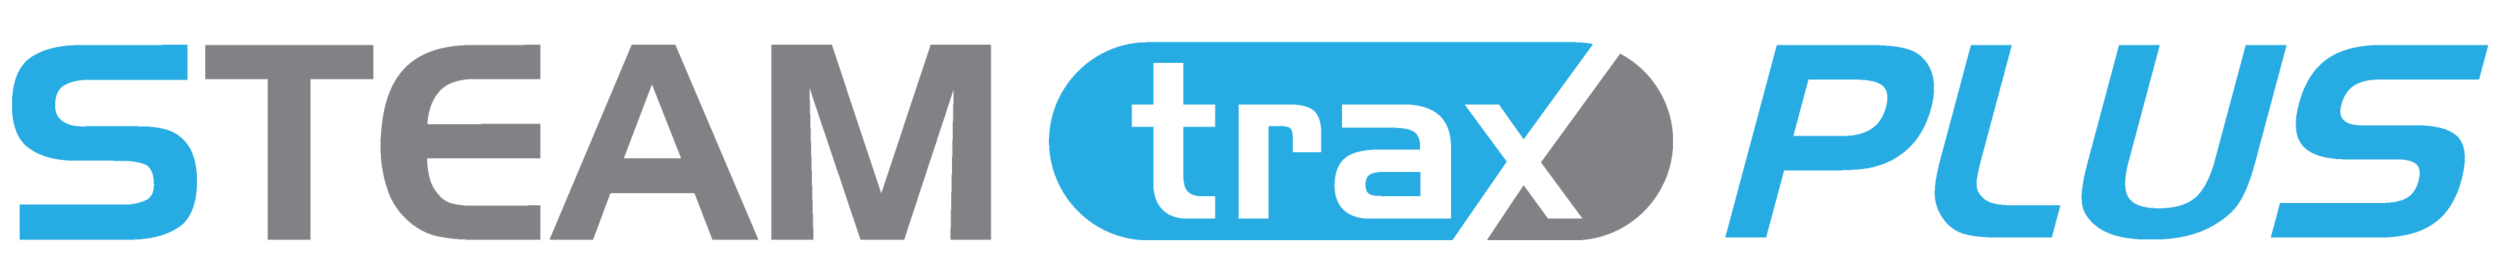 STEAMtrax_logos_8.png